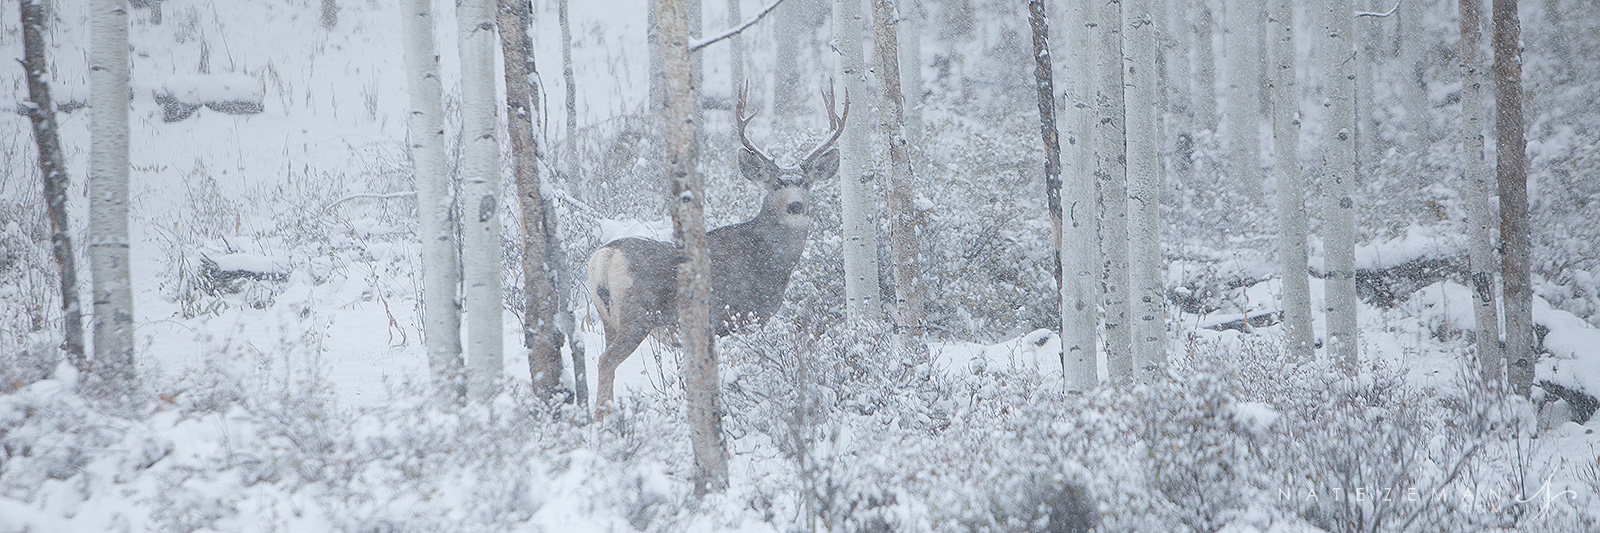 mule deer, buck, deer, colorado, snow, aspen, forest, woods, san juan mountains, co, photo